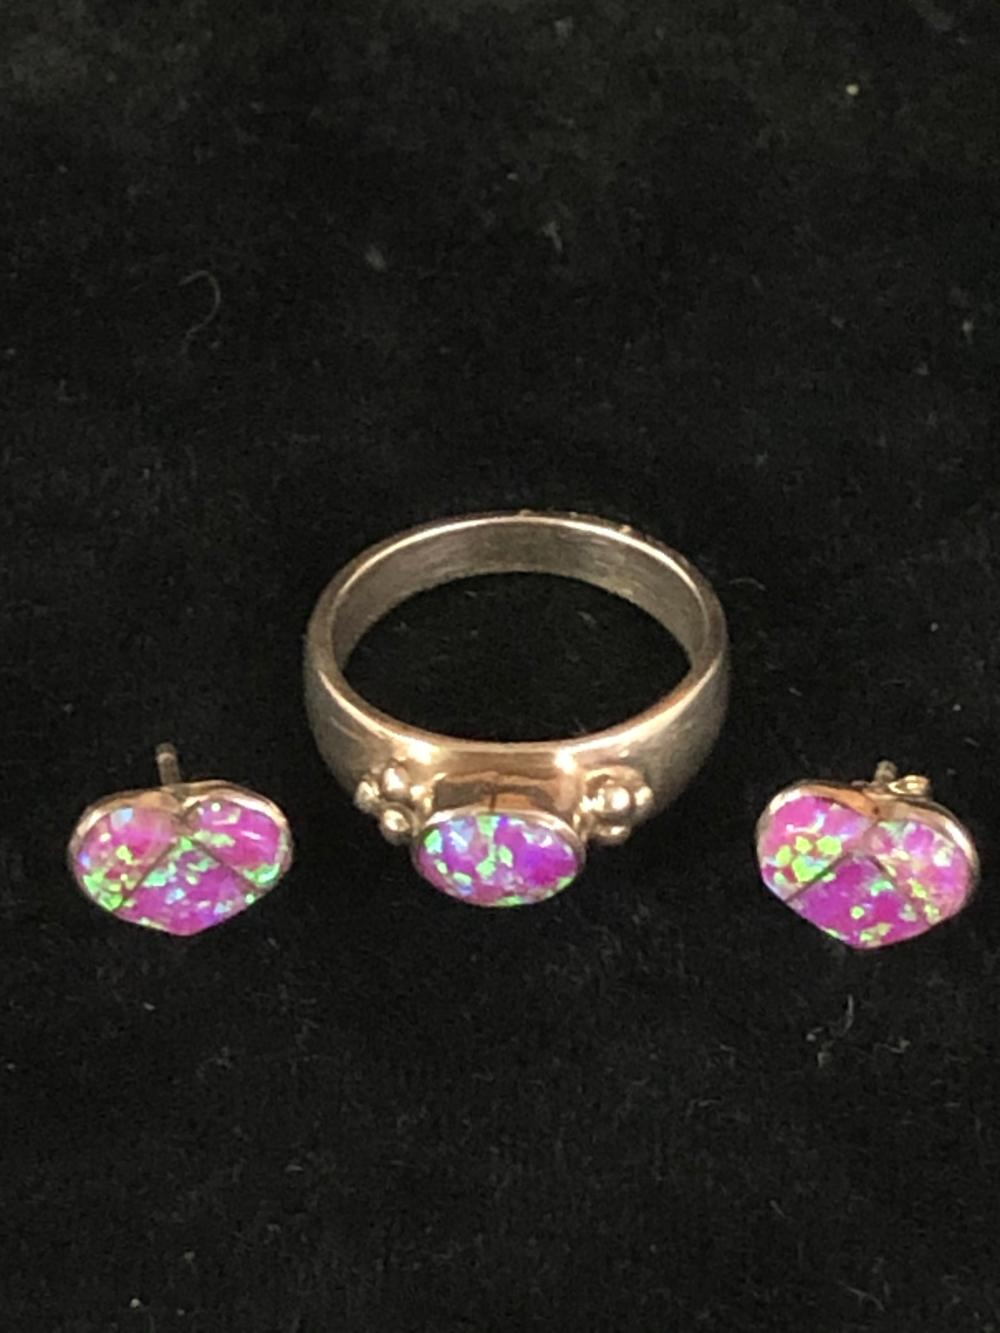 Cultured opal sterling silver ring and heart shaped earring 'set'